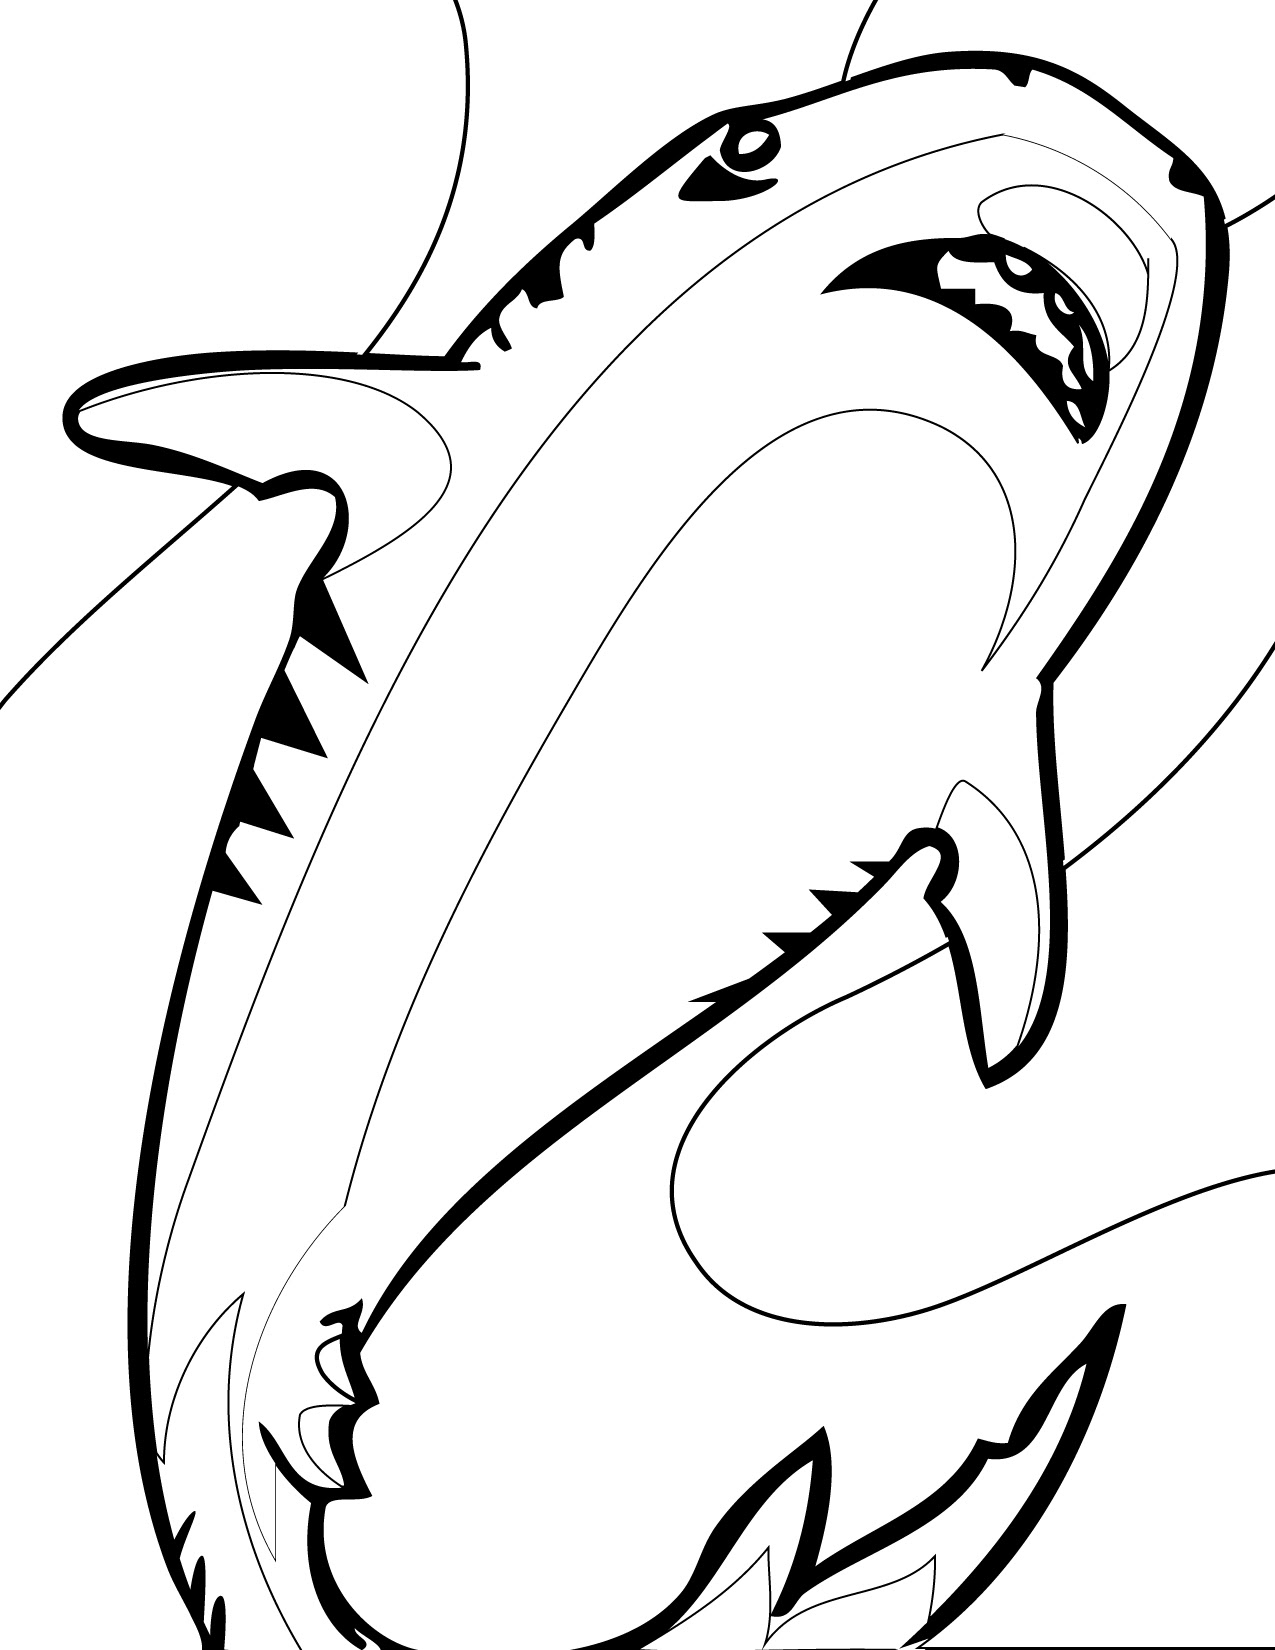 Shark Coloring Pages For Preschoolers at GetDrawings ...